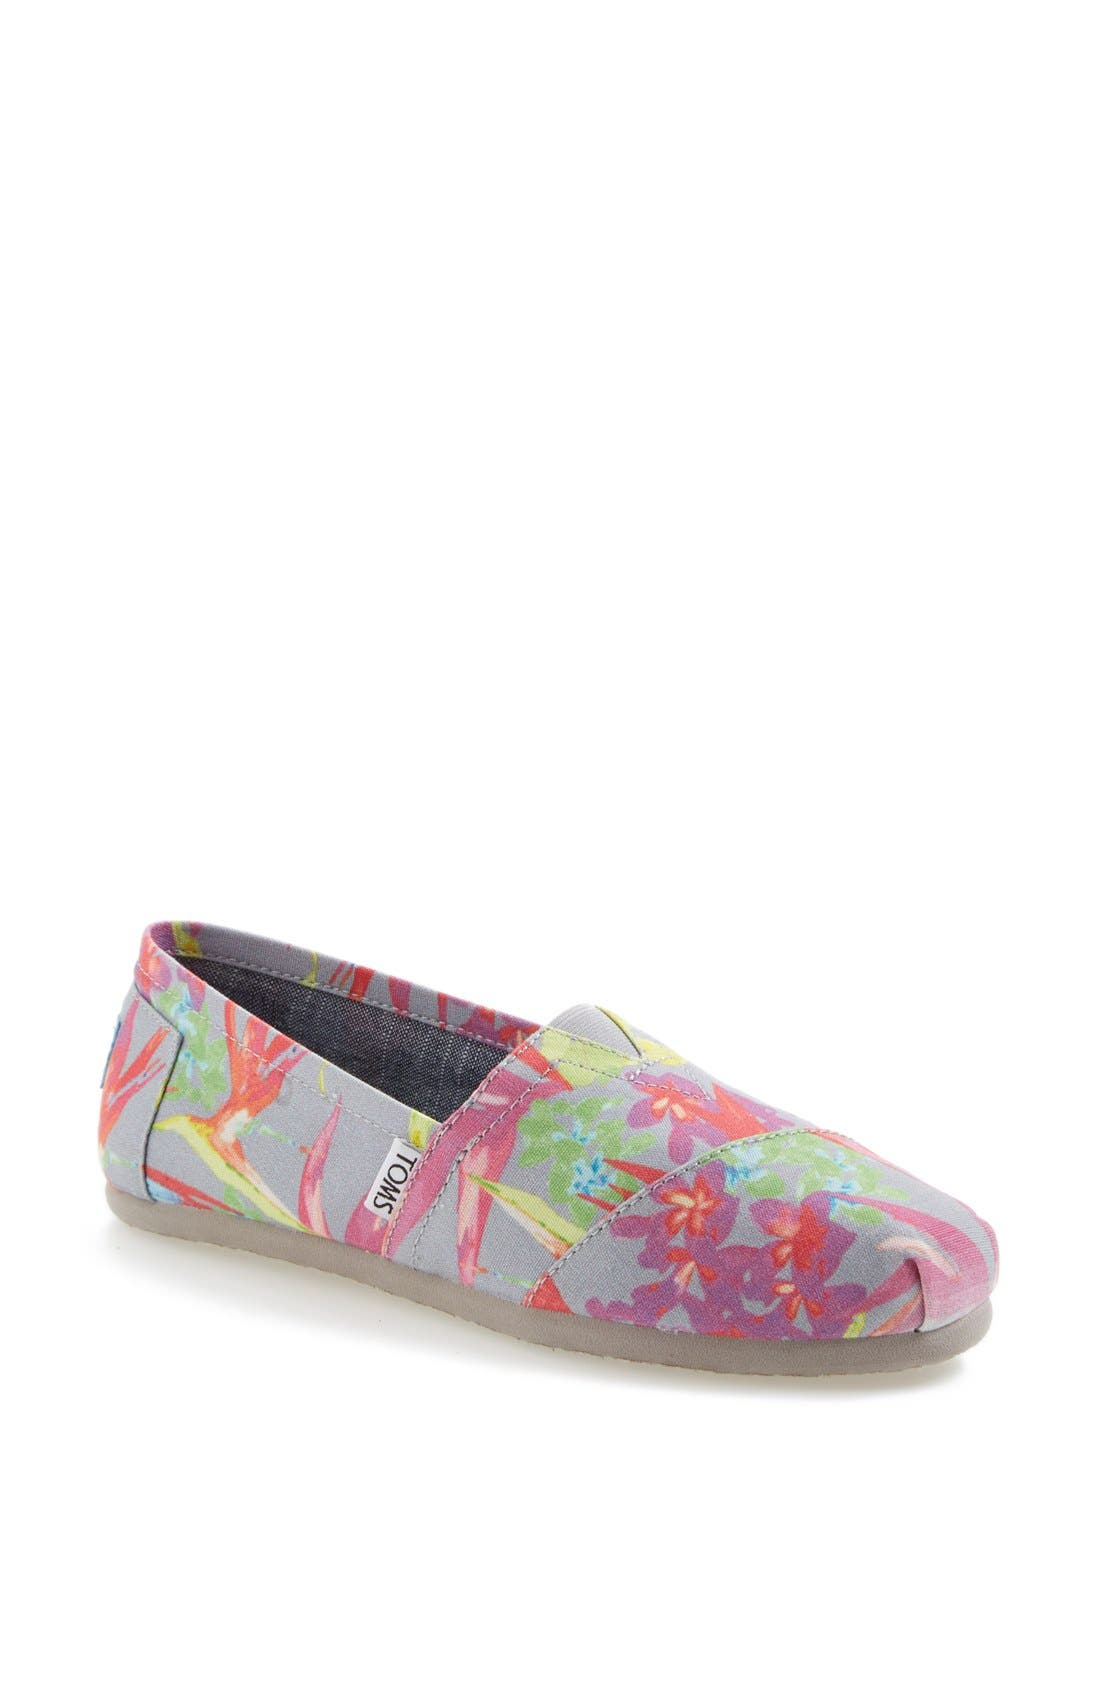 TOMS, 'Classic - Birds of Paradise' Slip-On, Main thumbnail 1, color, 020